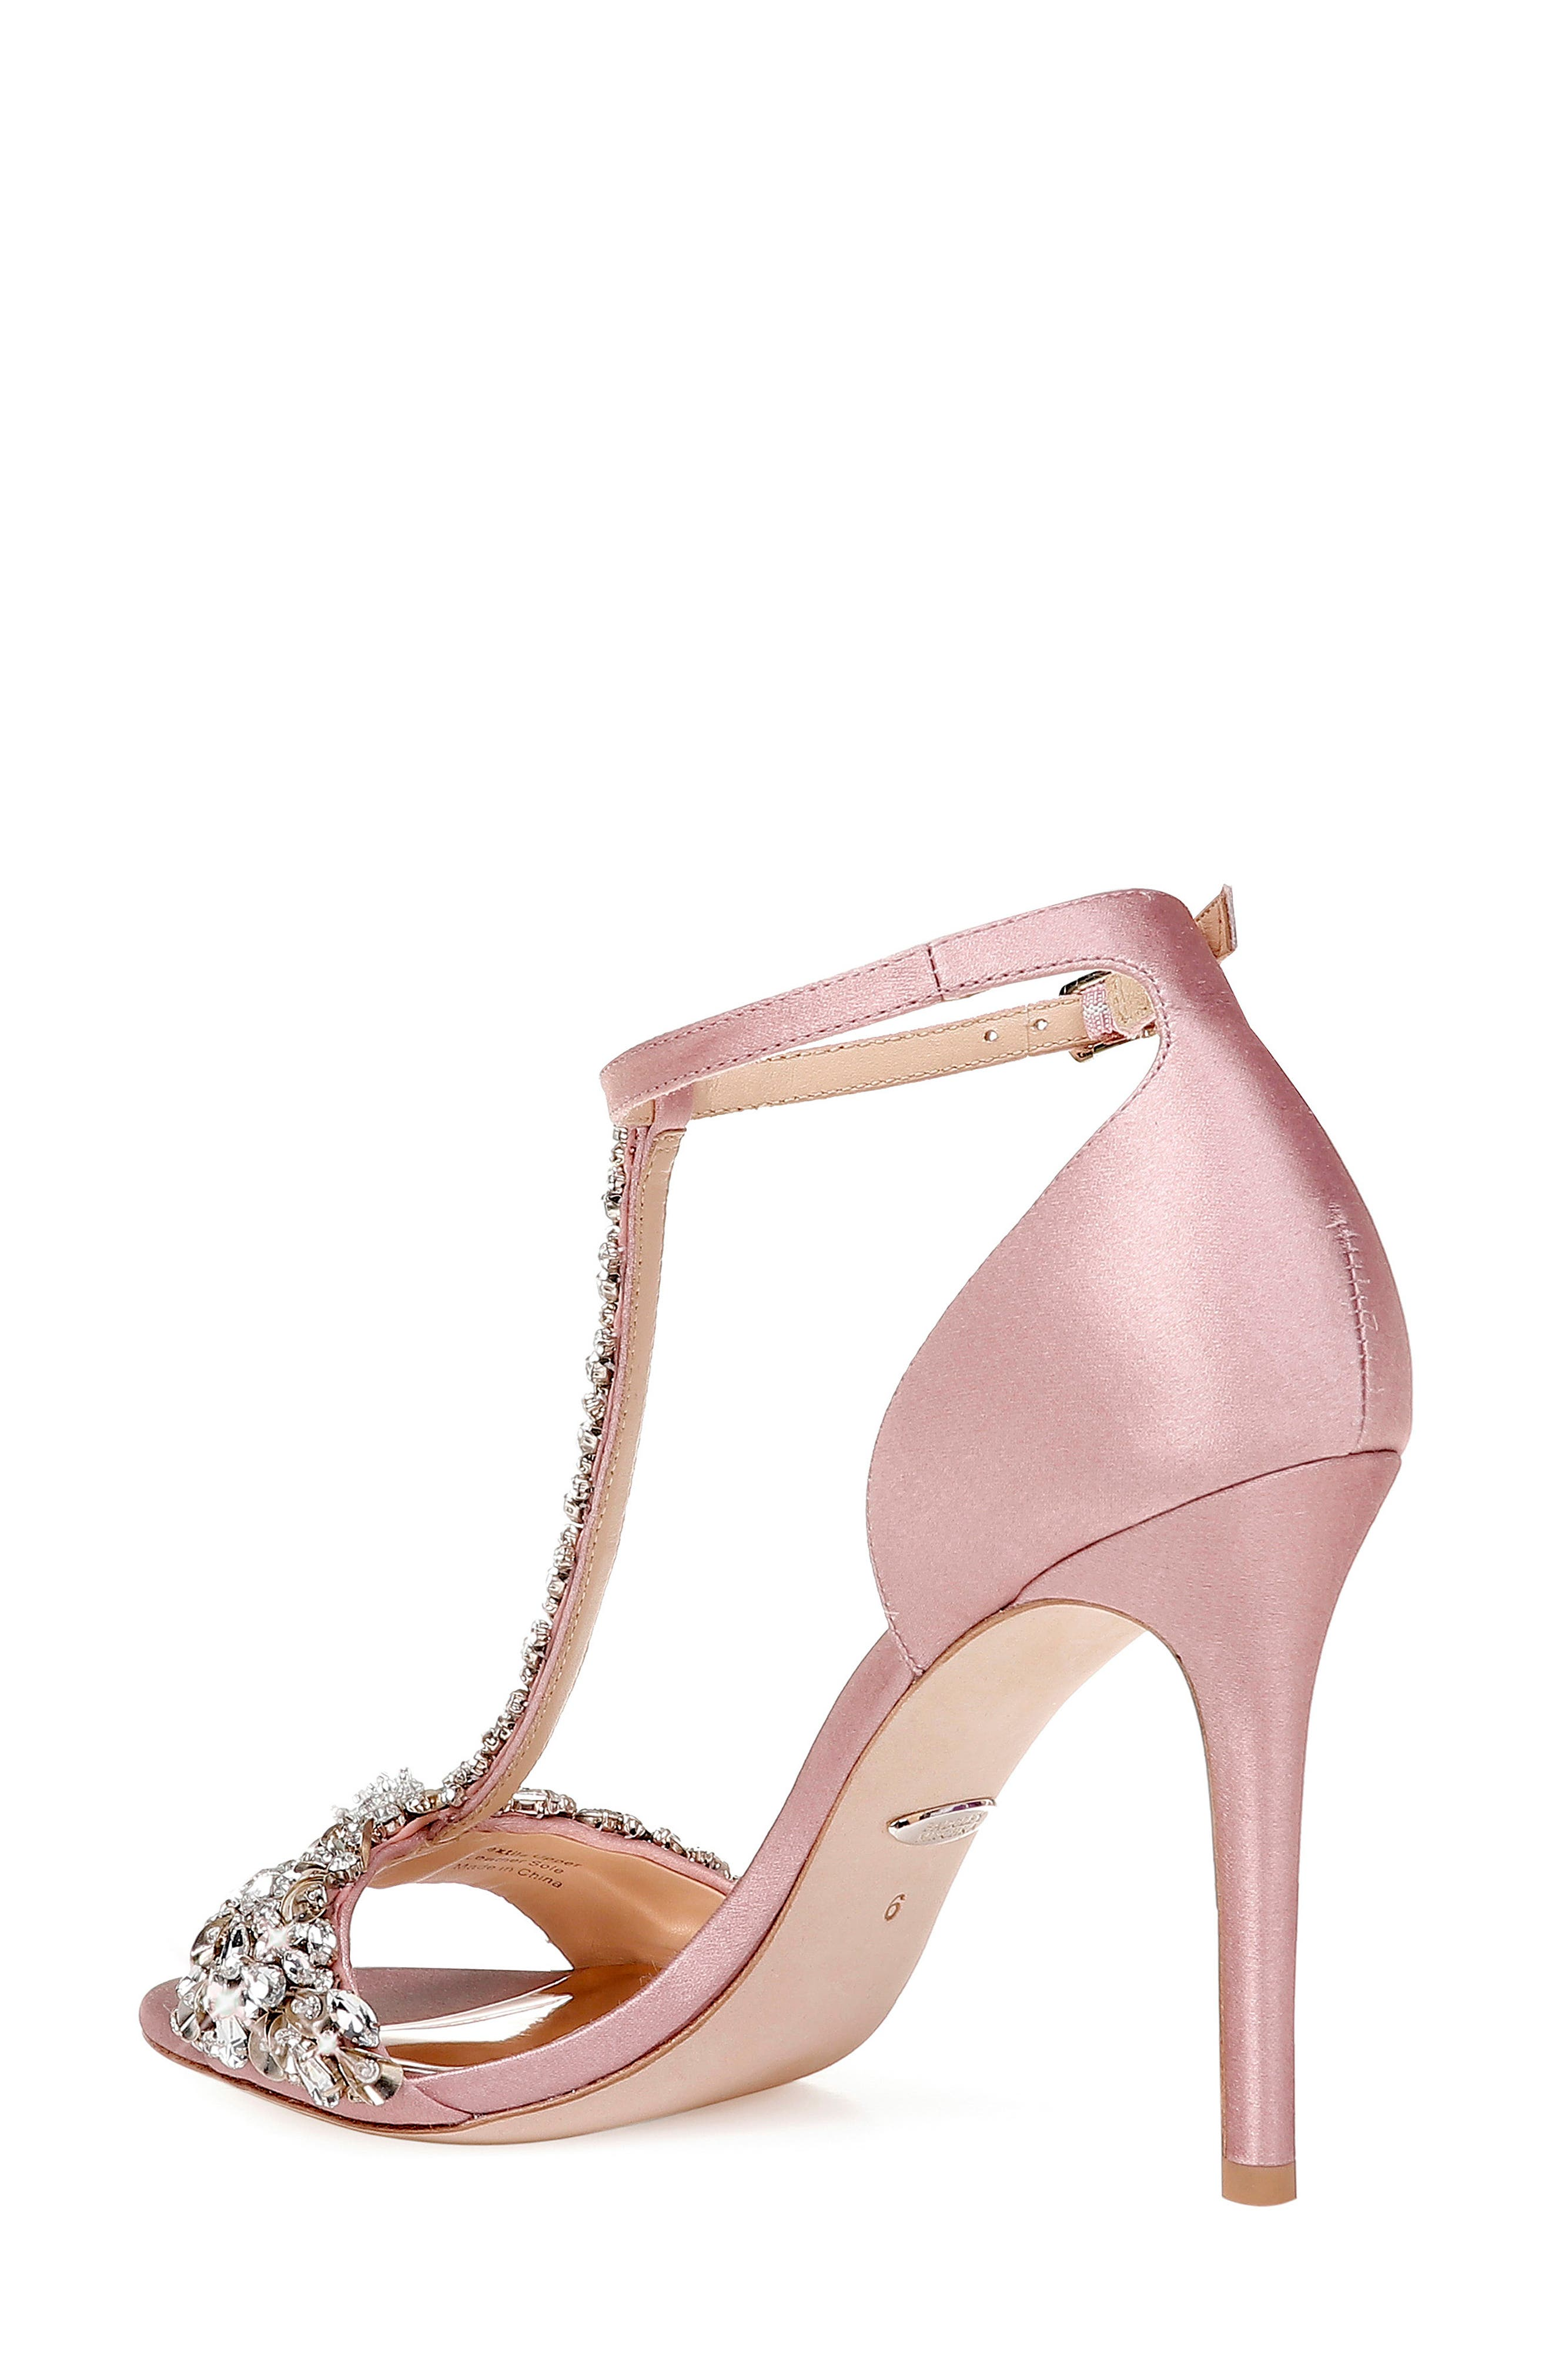 BADGLEY MISCHKA COLLECTION, Badgley Mischka Crystal Embellished Sandal, Alternate thumbnail 2, color, PINK ROSE SATIN